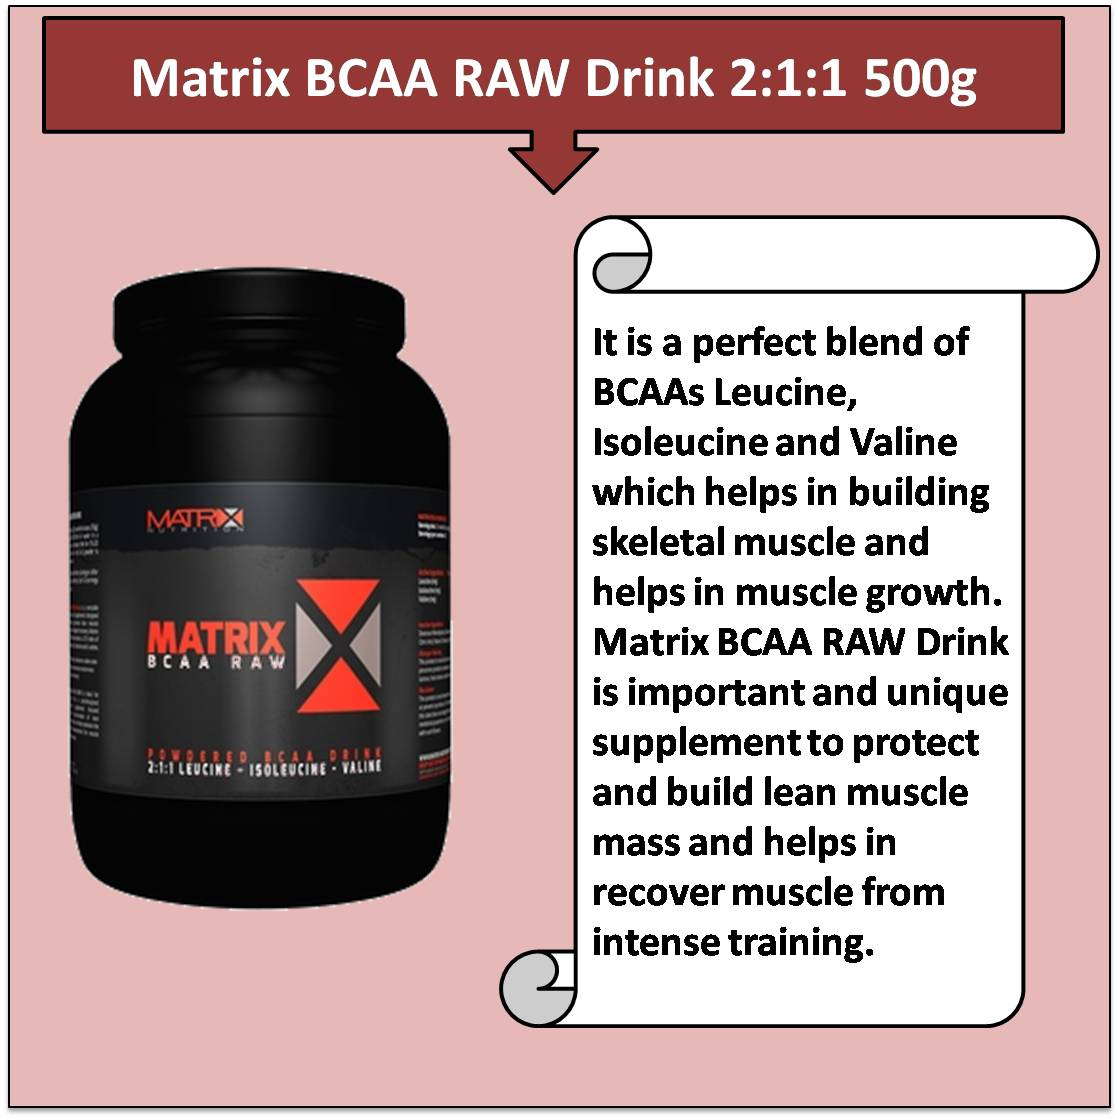 Matrix BCAA RAW Drink